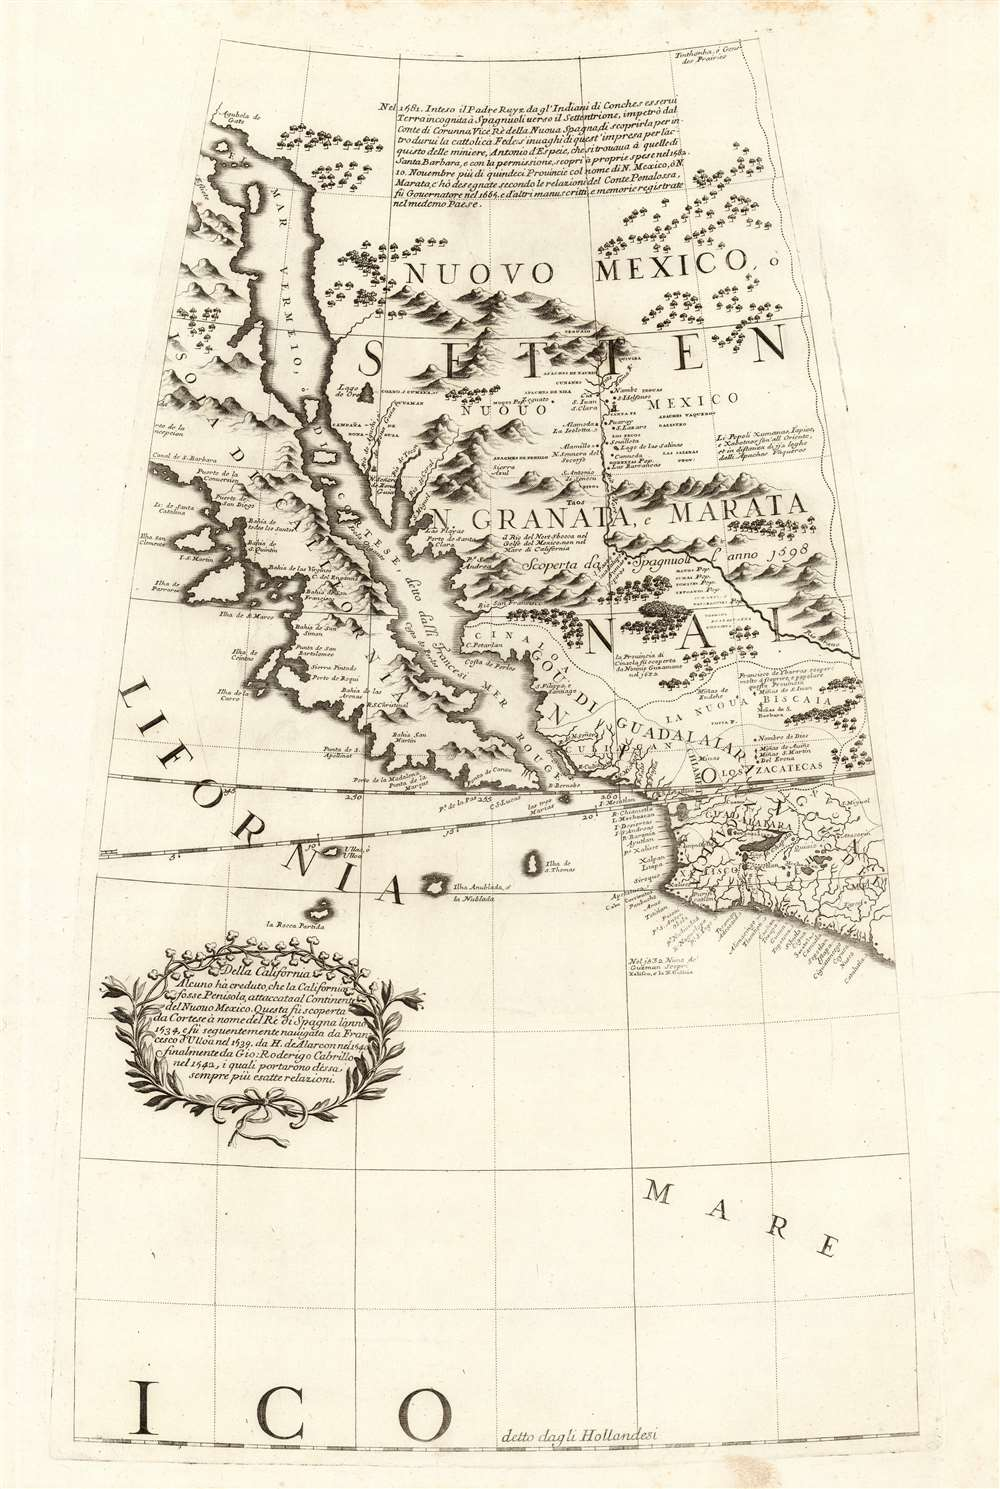 1688 / 1697 Coronelli Globe Gore of New Mexico and California as an Island